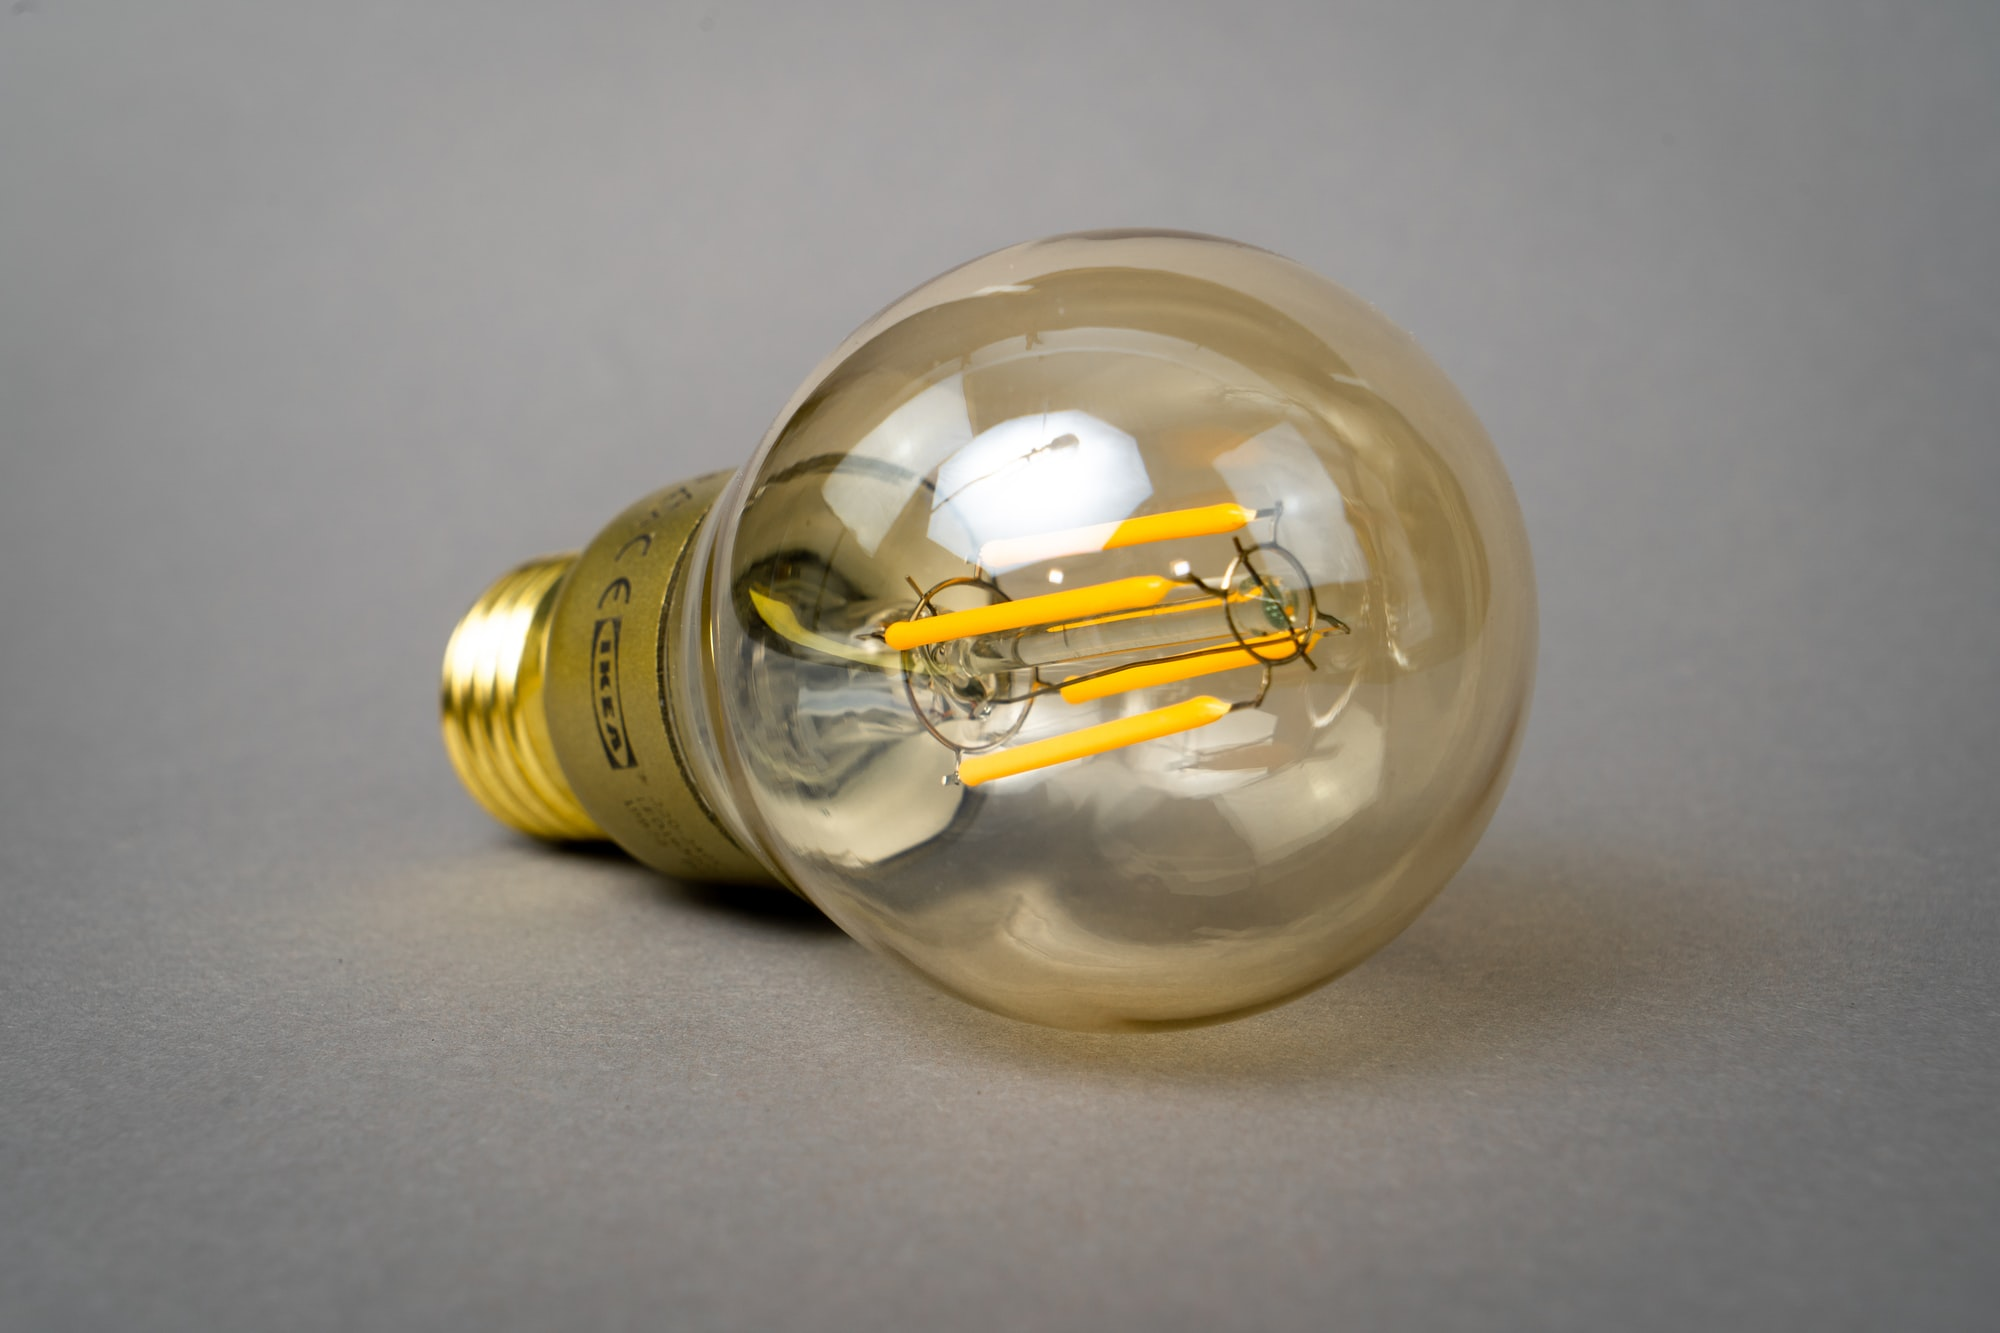 a retro lamp with LED filament to get the look of ancient filament bulbs.